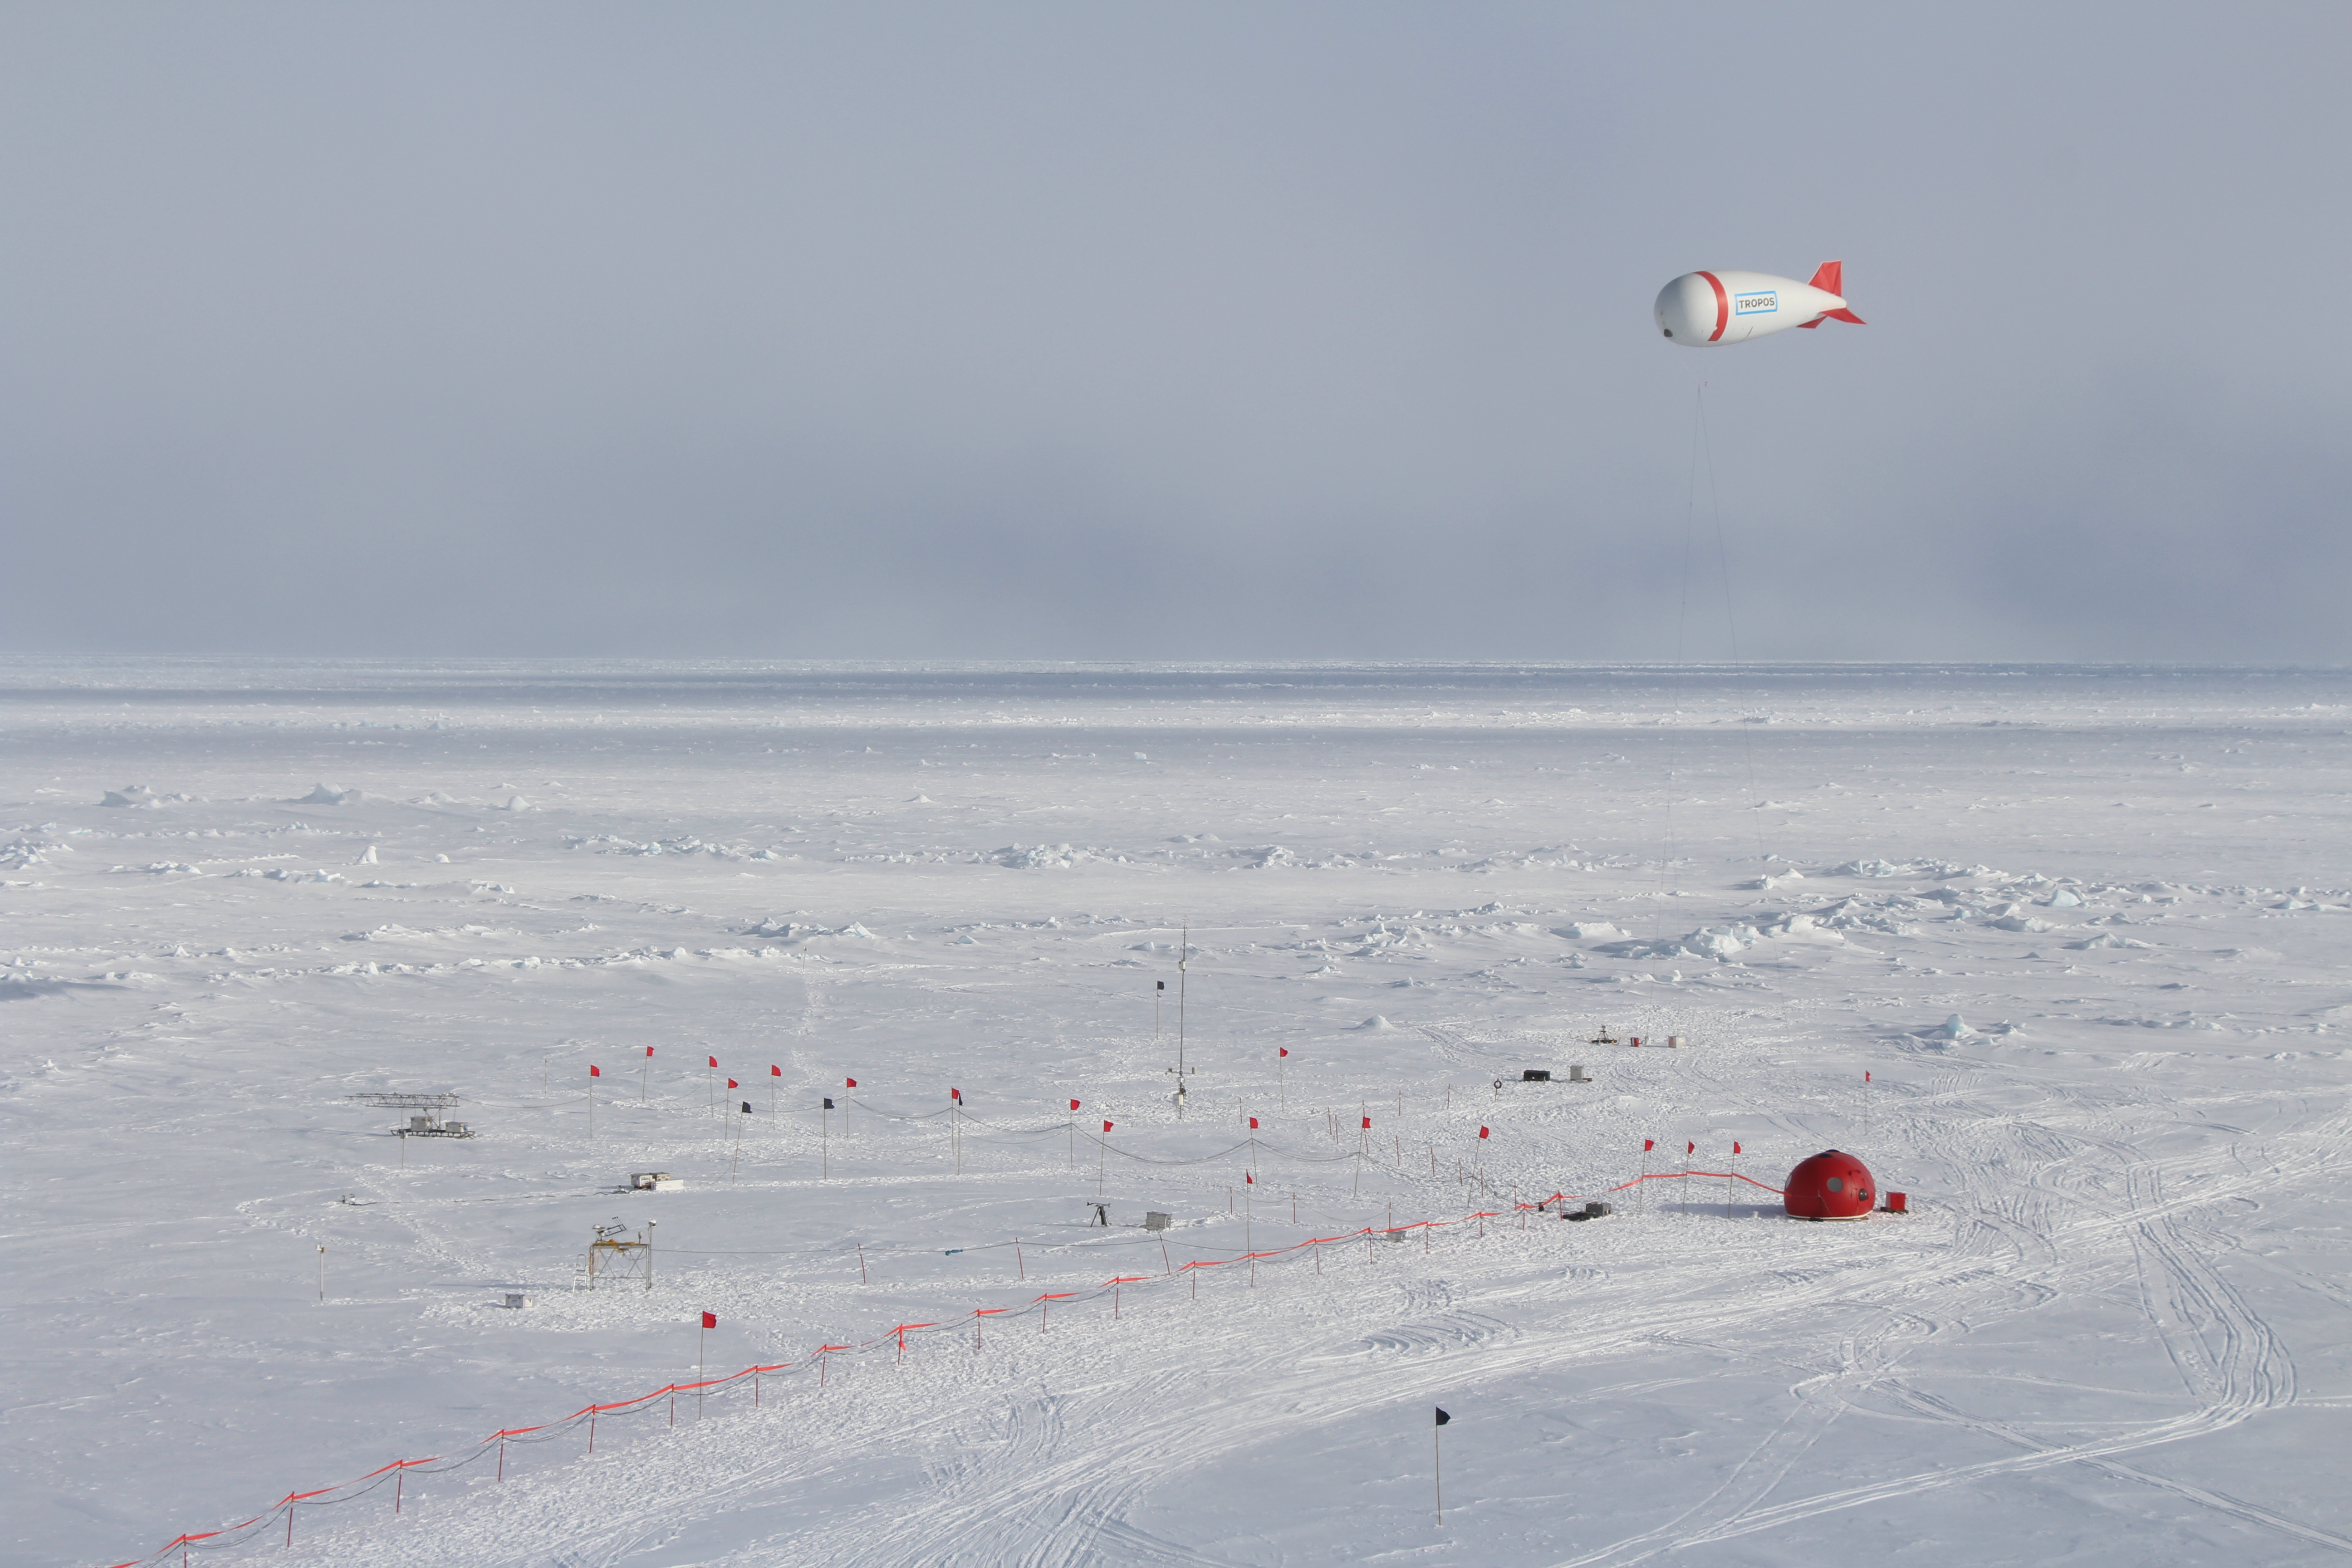 Meteorological station including tethered balloon at the ice camp during PASCAL.